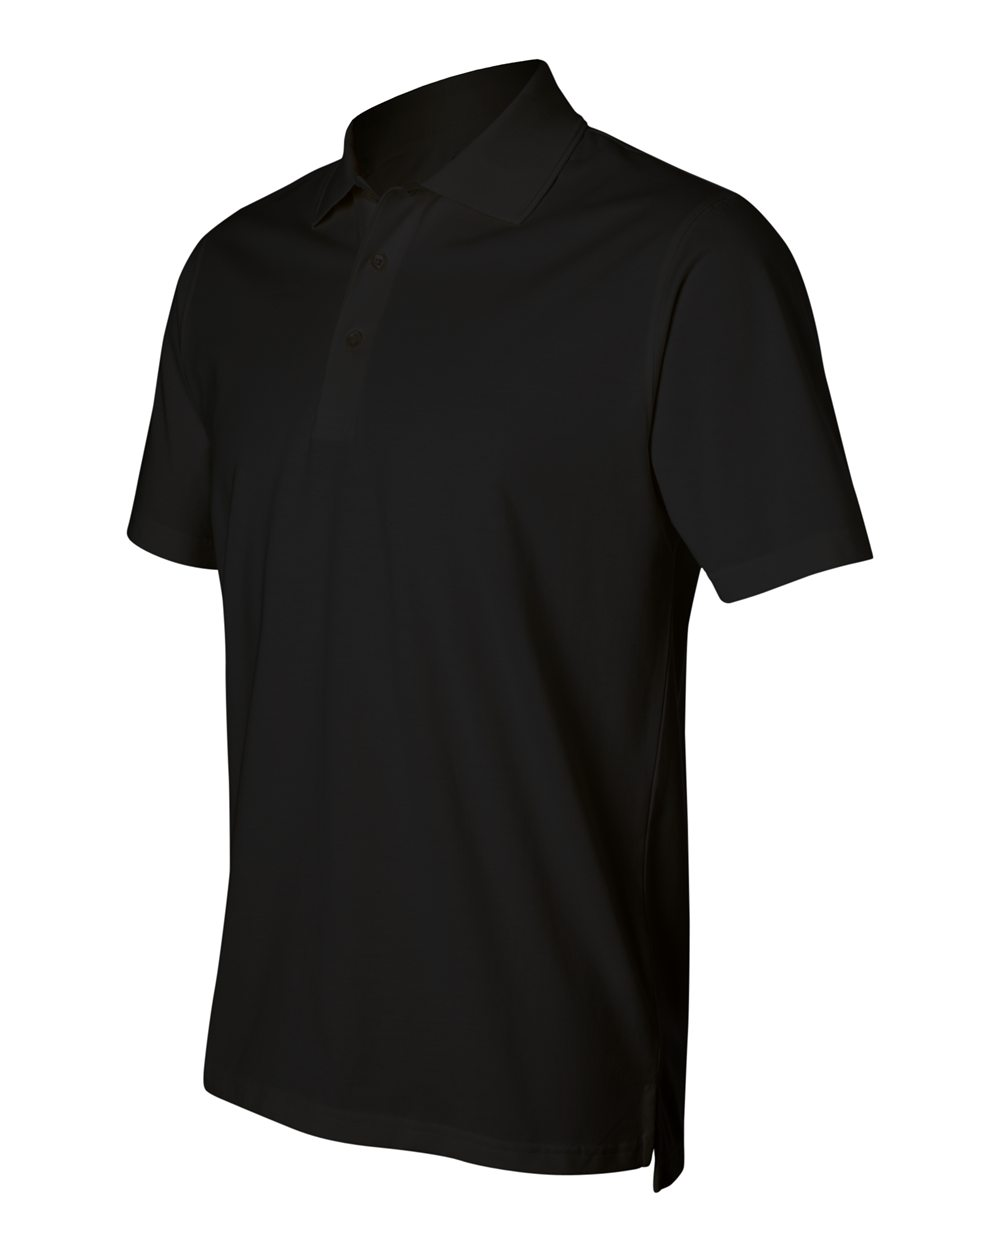 IZOD 13Z0062 - Ultra-Wicking Pima Cool Sport Shirt